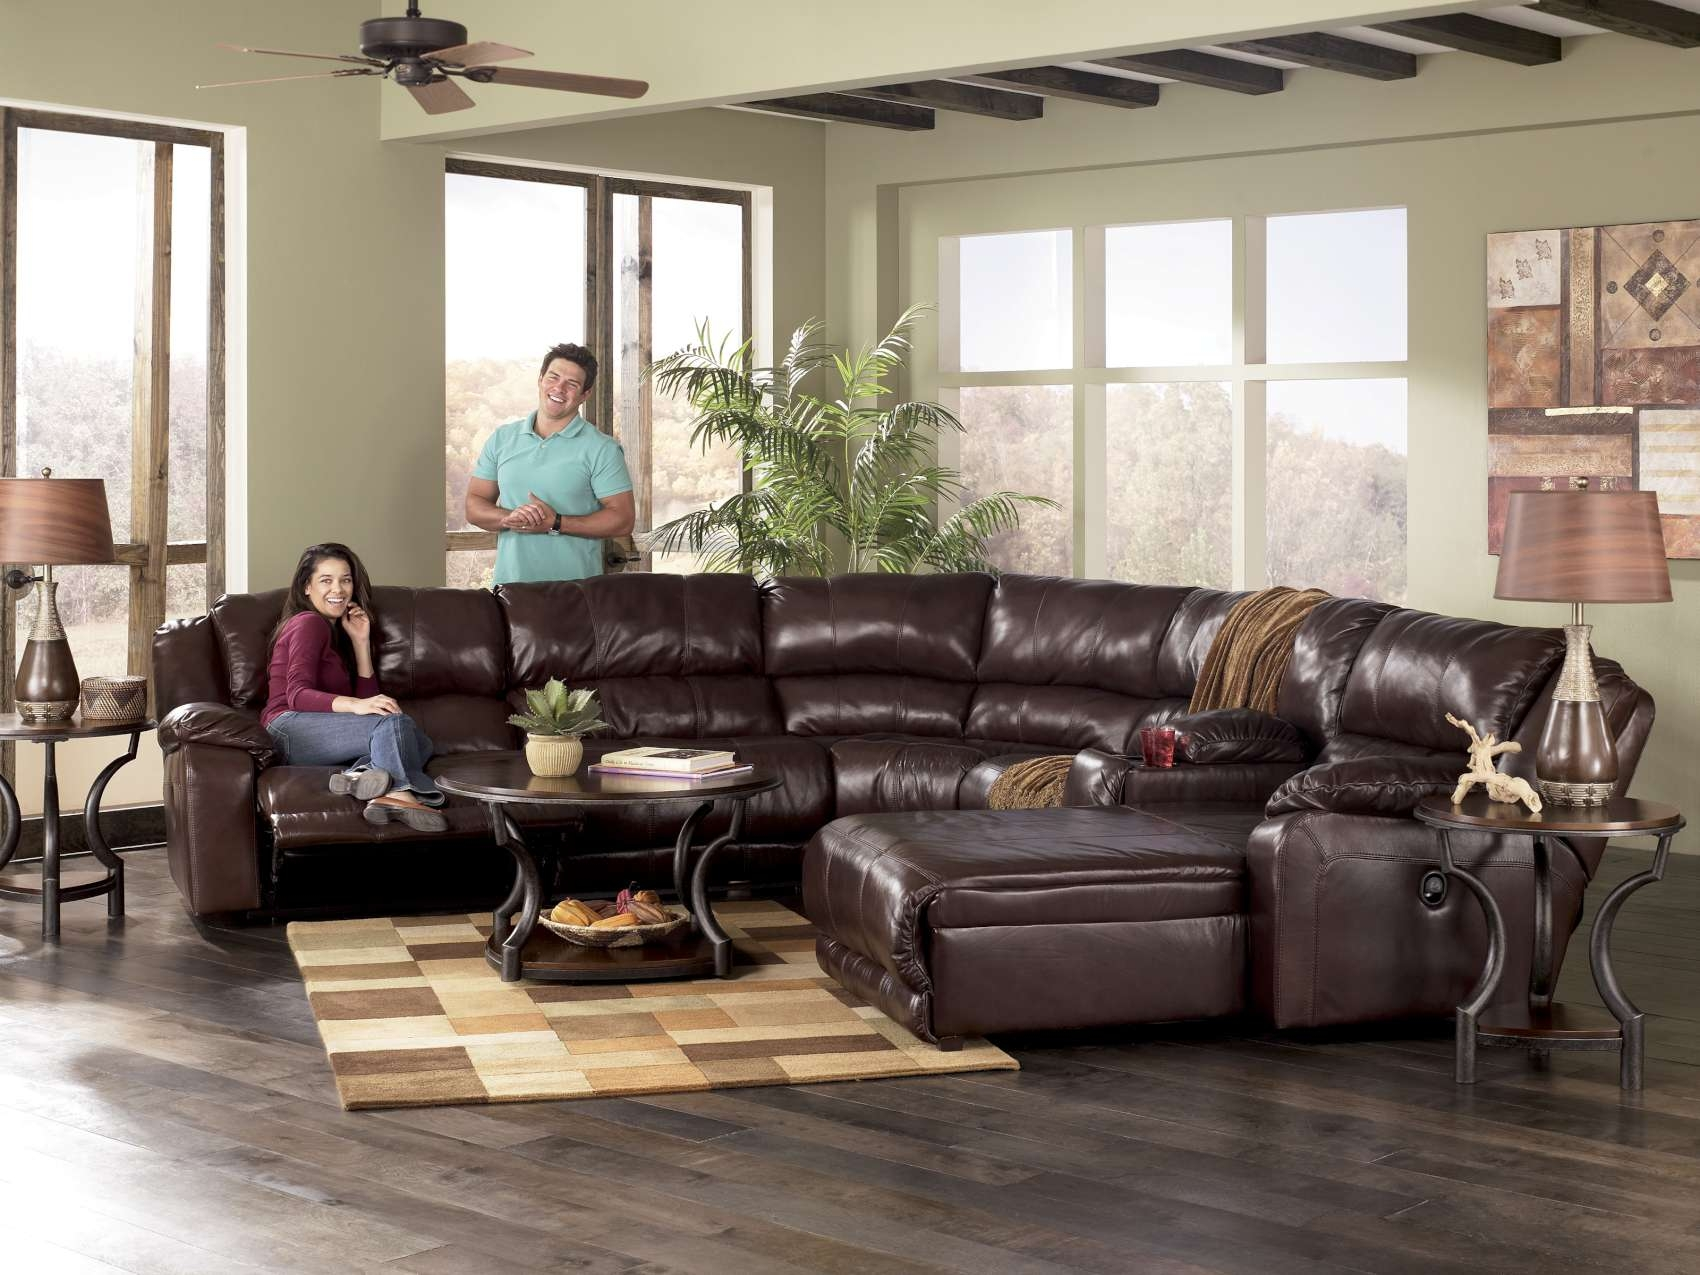 Braxton Java Reclining Sofa Collection97800 Regarding Braxton Sectional Sofa (#3 of 12)